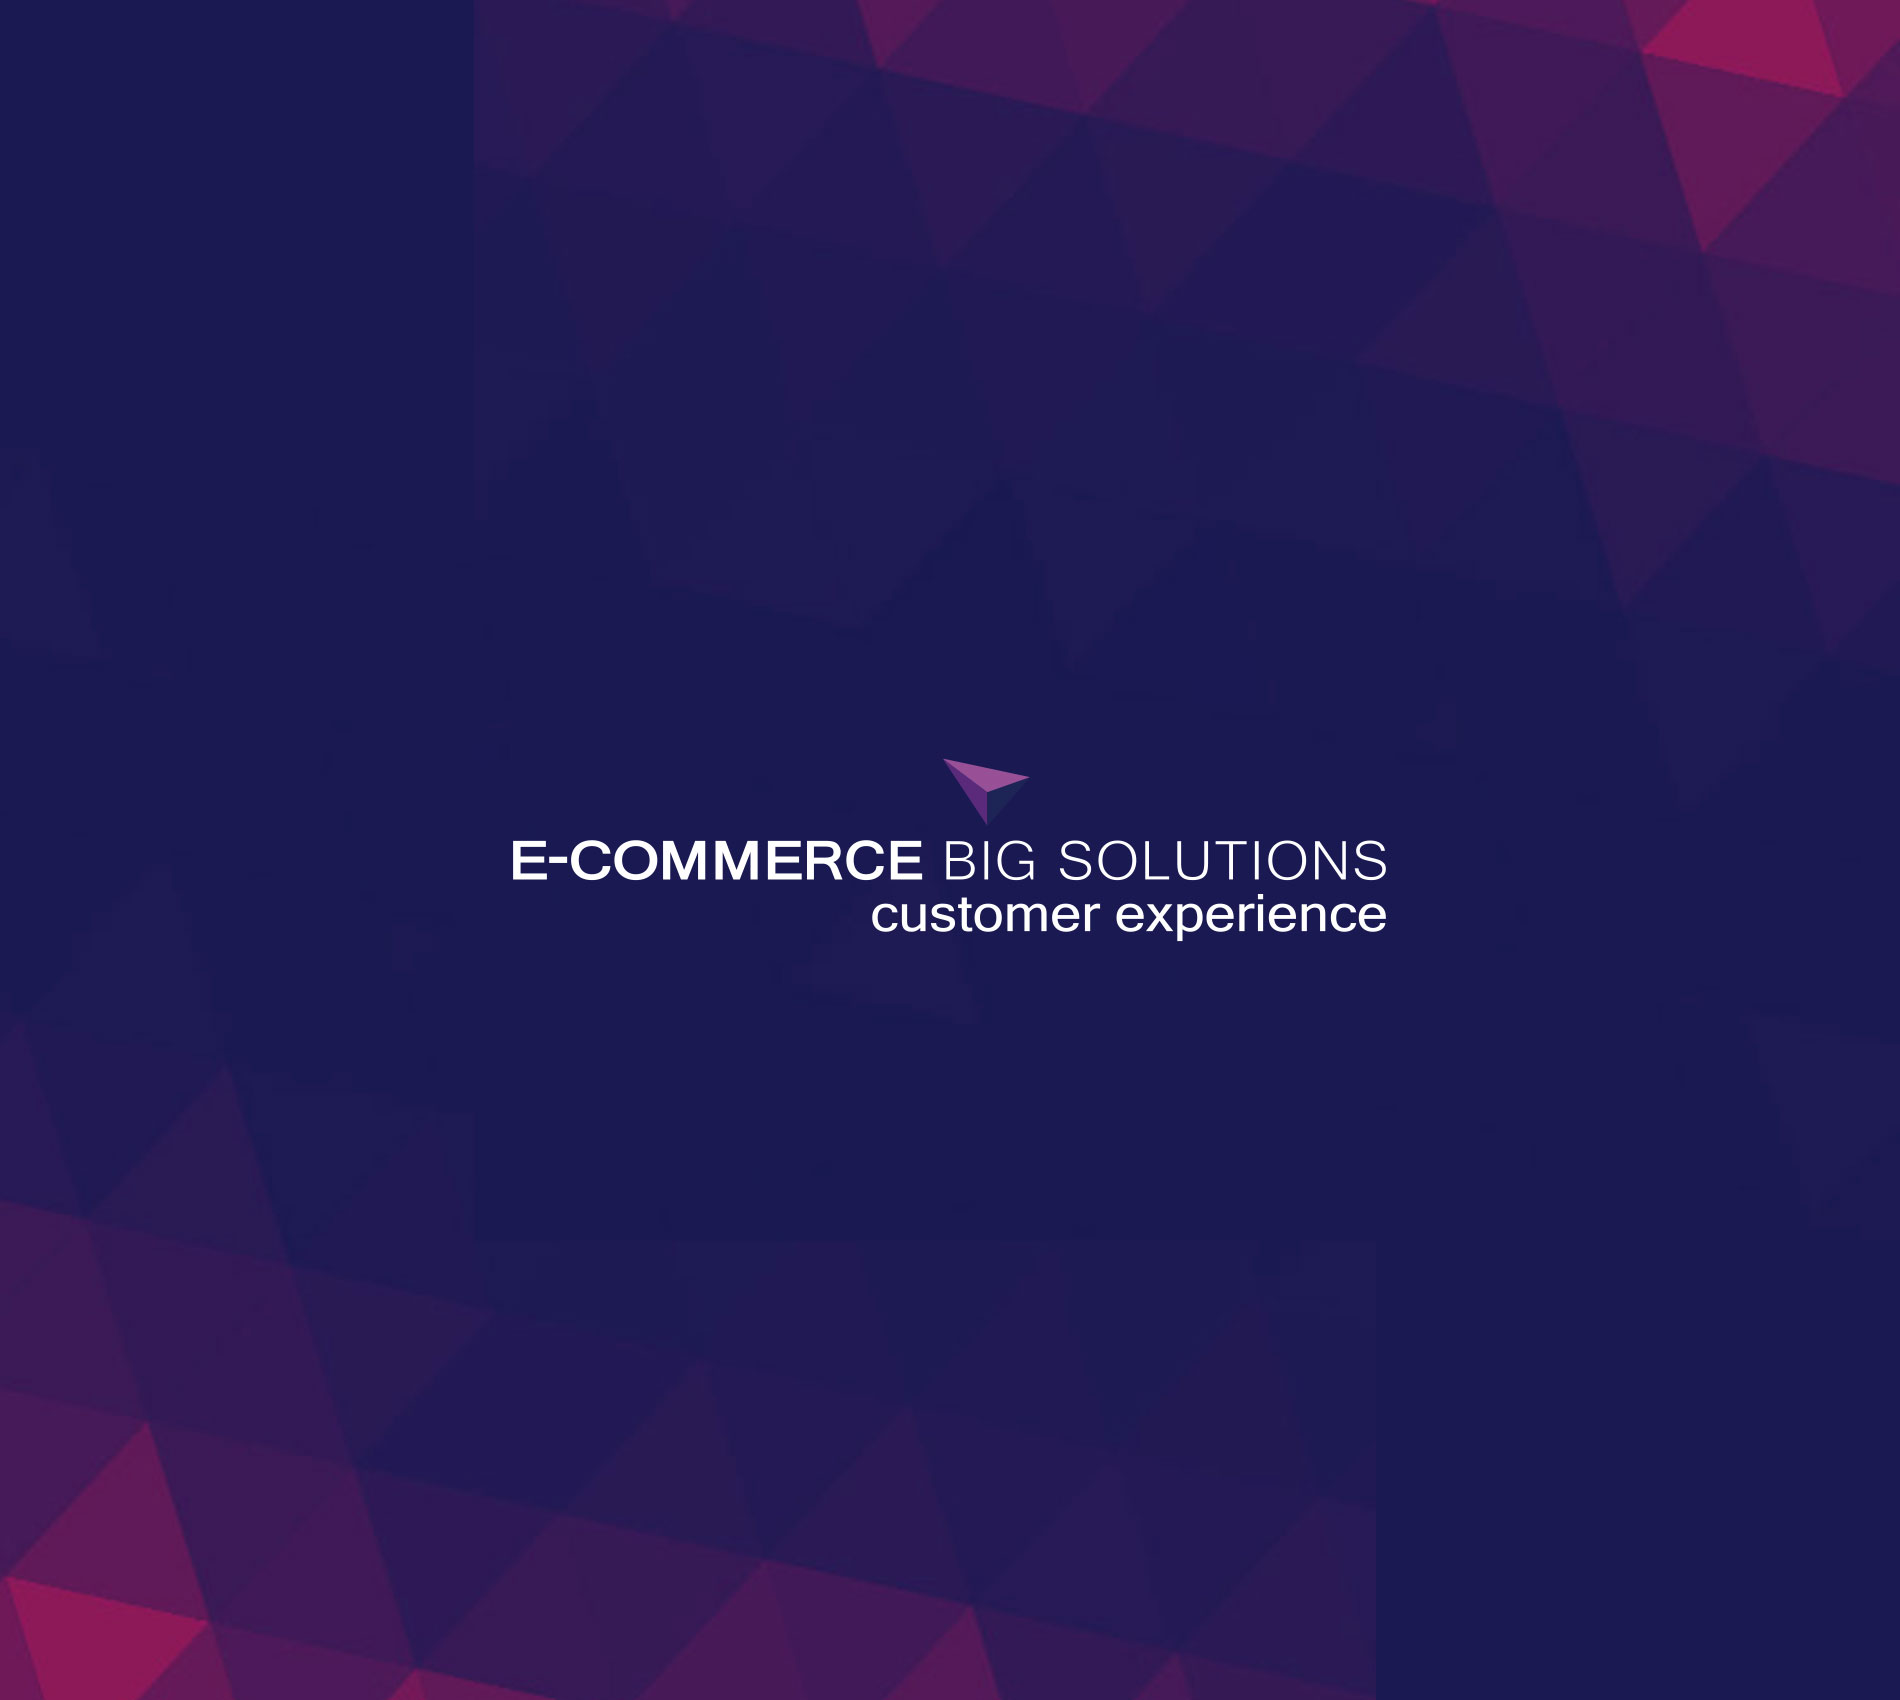 E-commerce Big Solutions | Customer Experience 2021